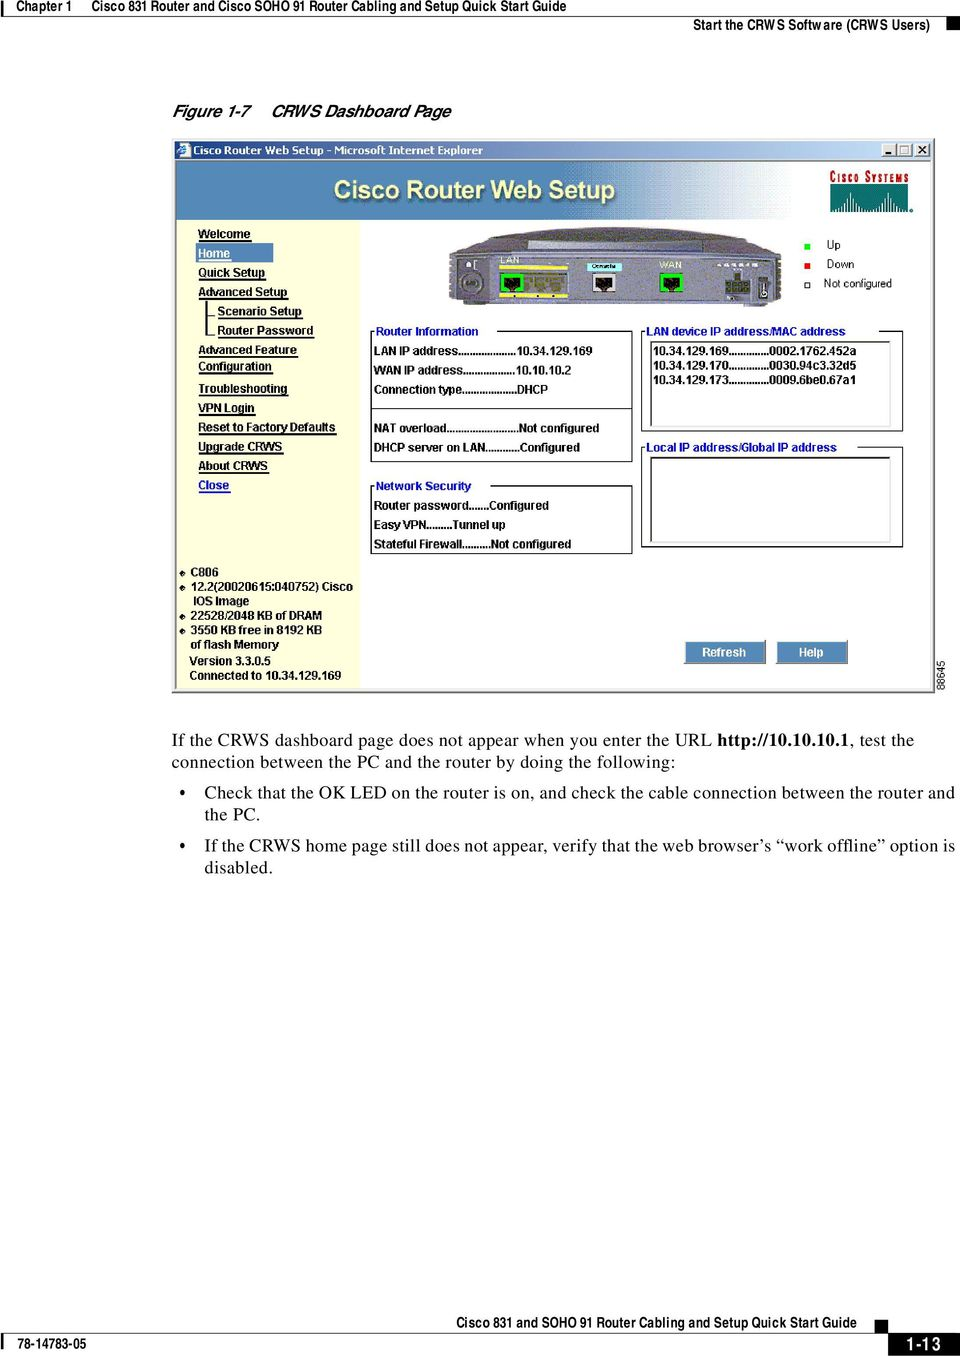 Cisco 831 Router And Soho 91 Cabling Setup Quick Console Cable Wiring Diagram 3550 10101 Test The Connection Between Pc By Doing